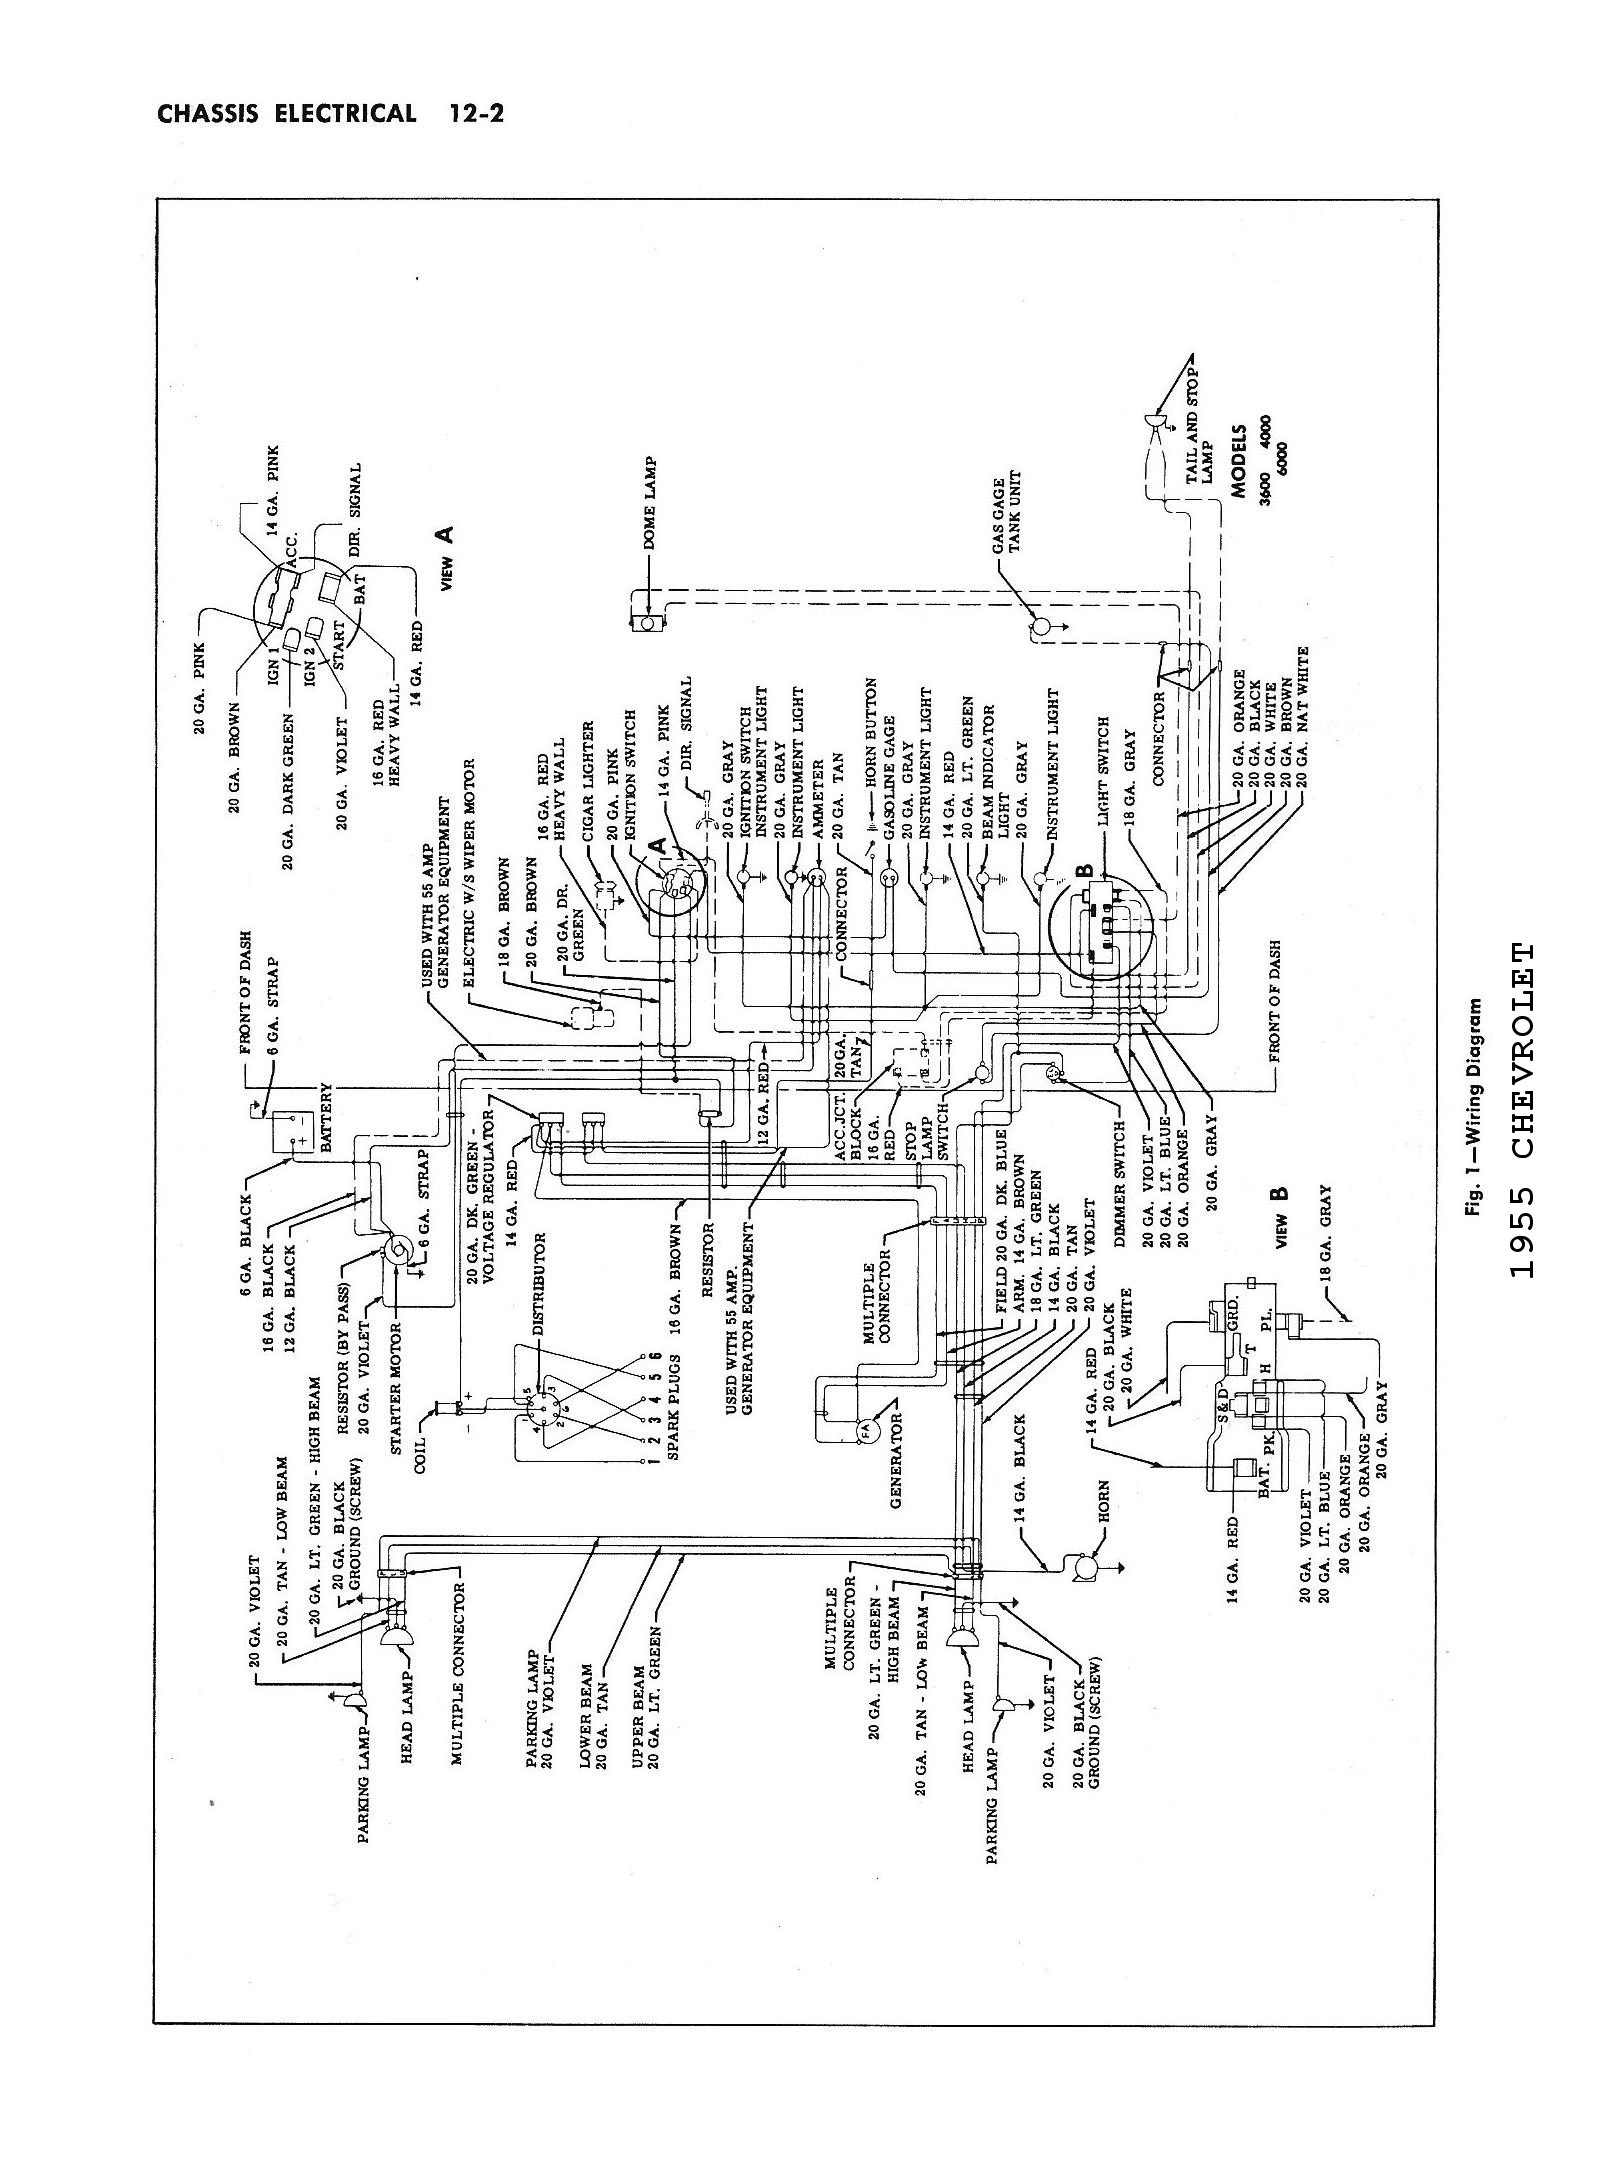 1954 strat wiring diagram digital resources 1954 Strat Wiring Diagram